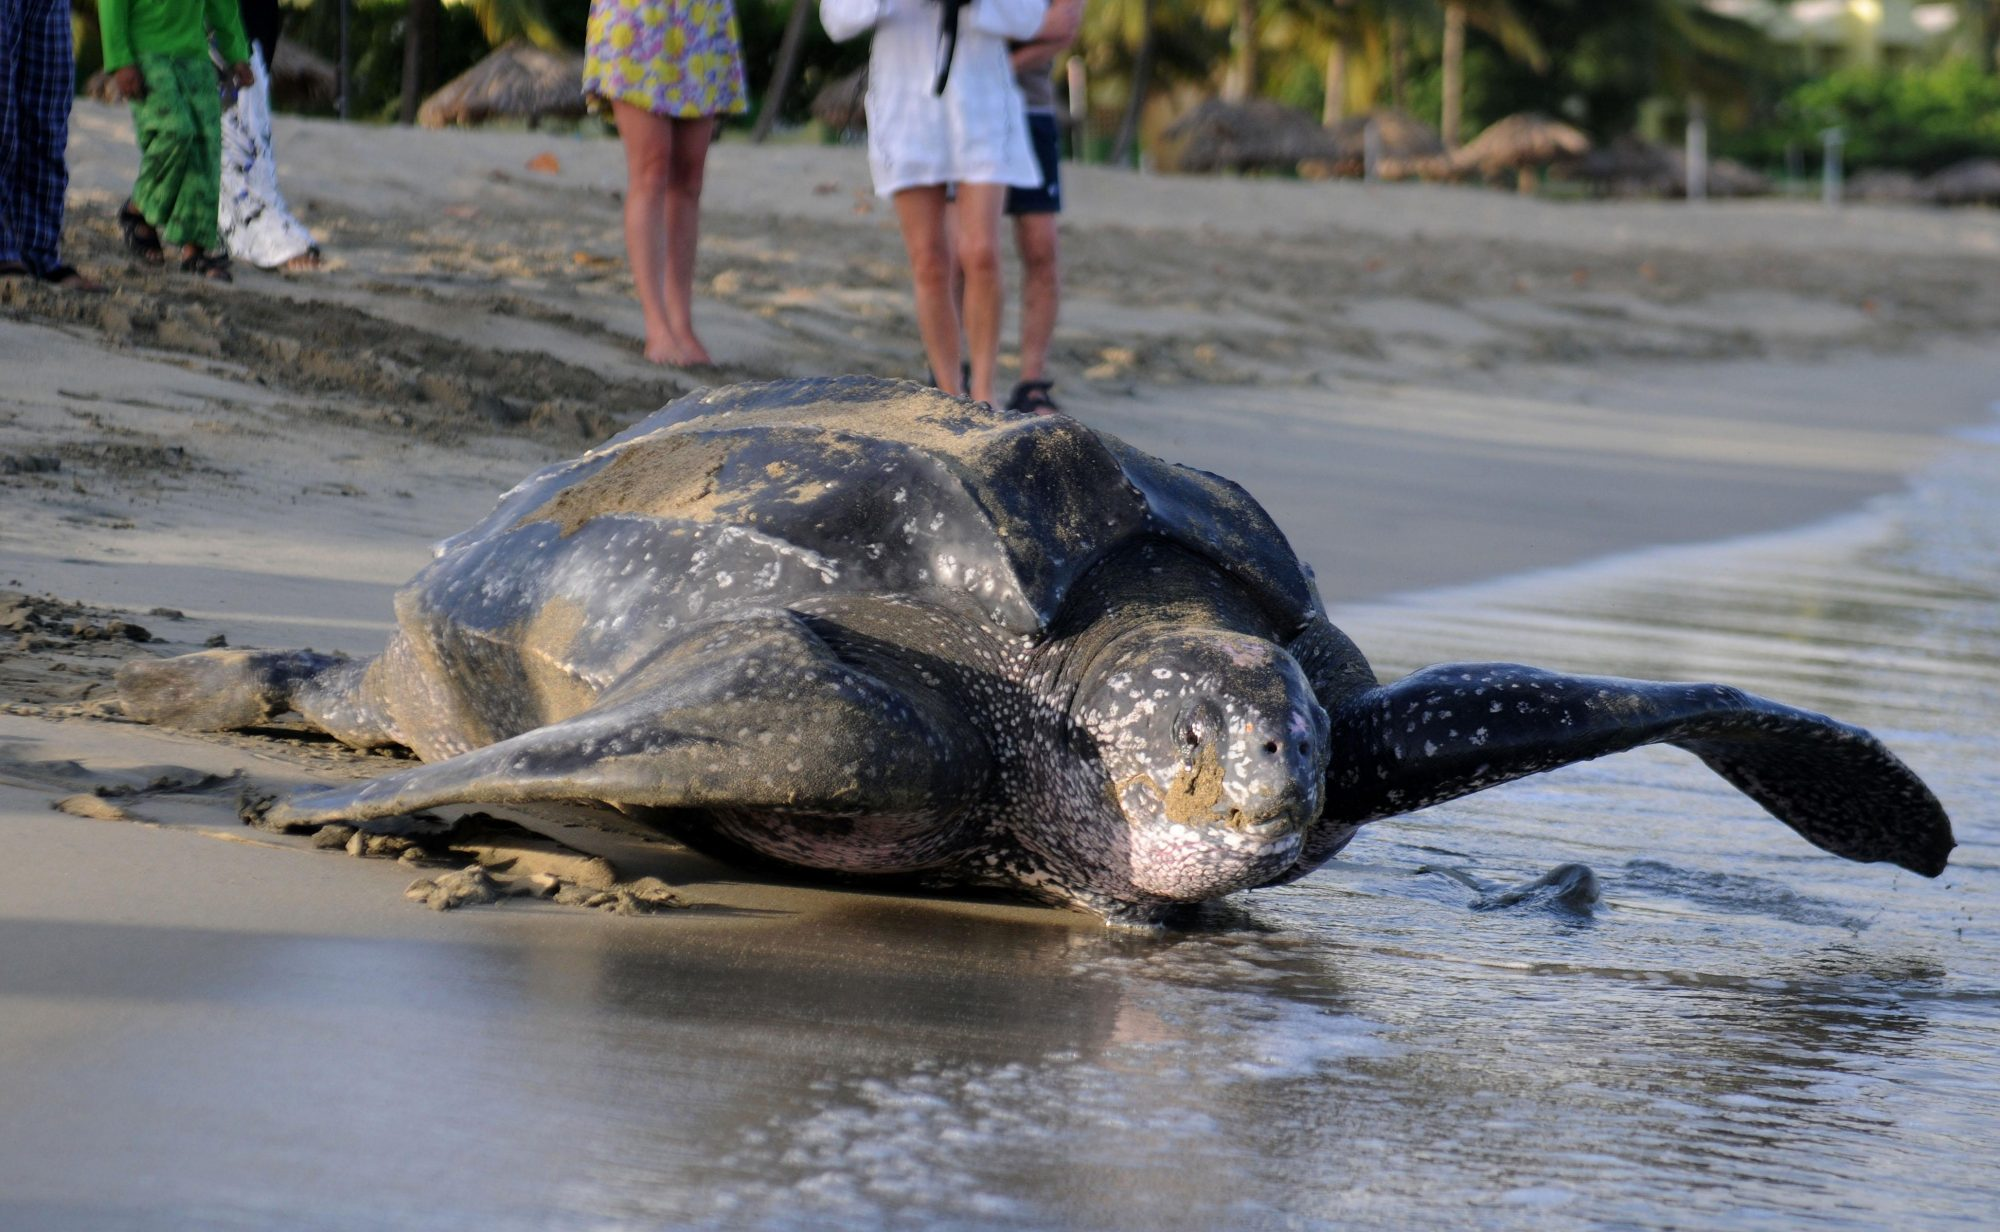 The biggest turtle in the world 33